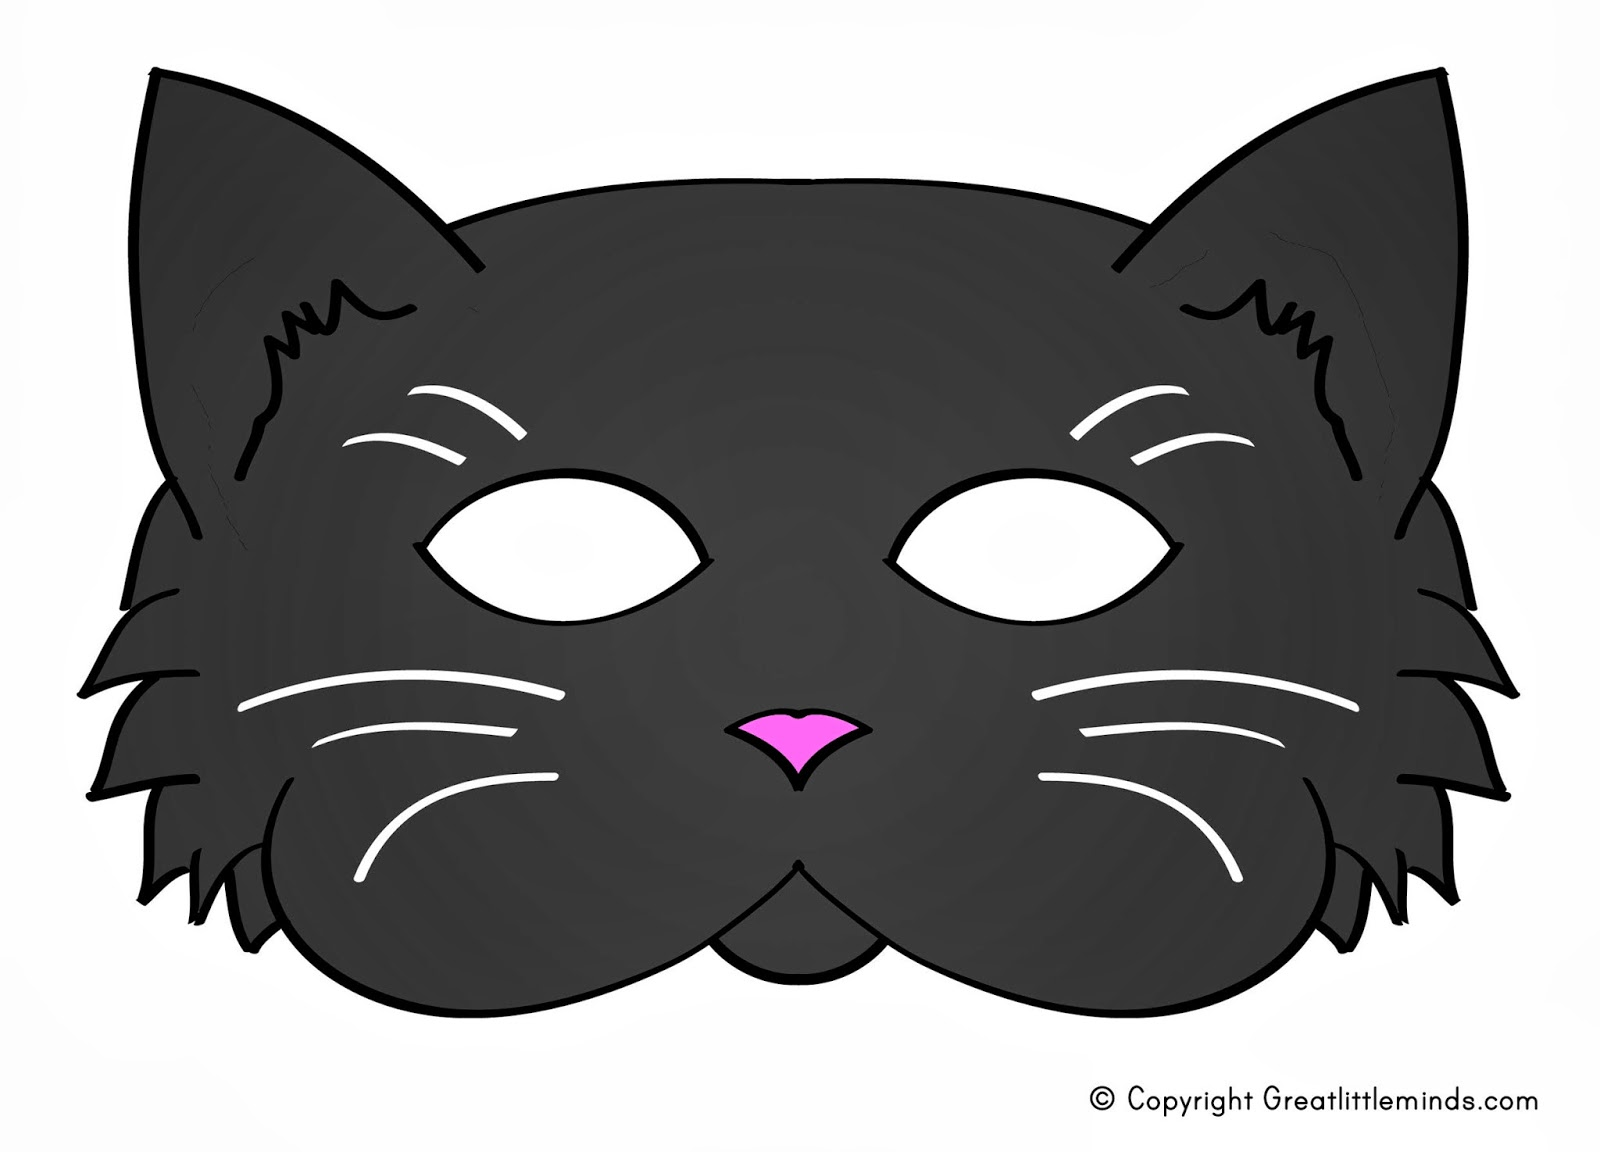 Epic image pertaining to cat mask printable